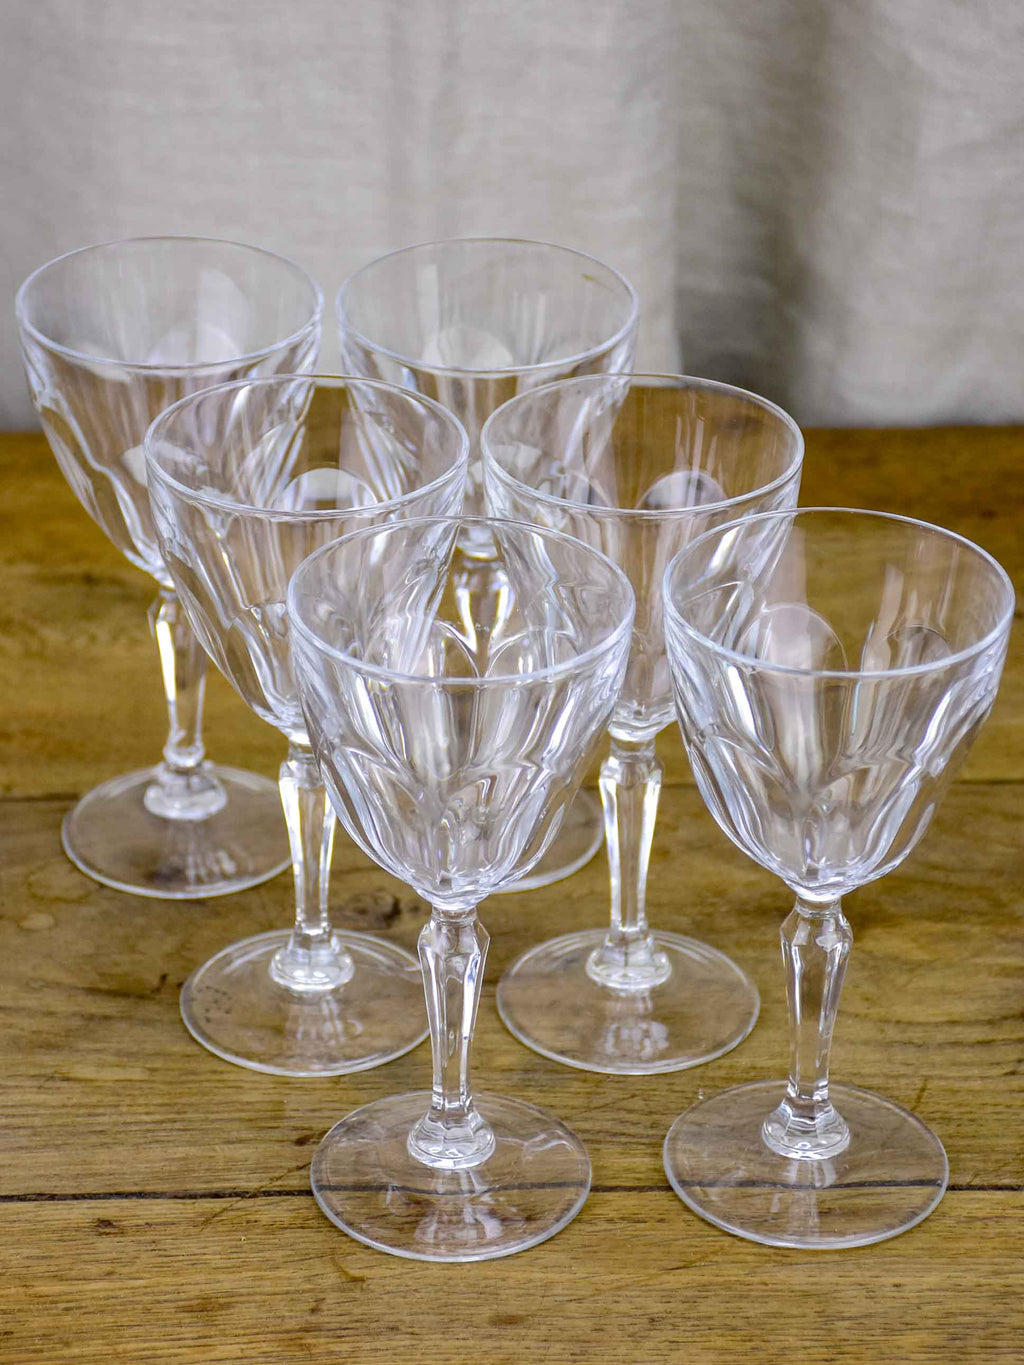 Six classic antique French wine glasses